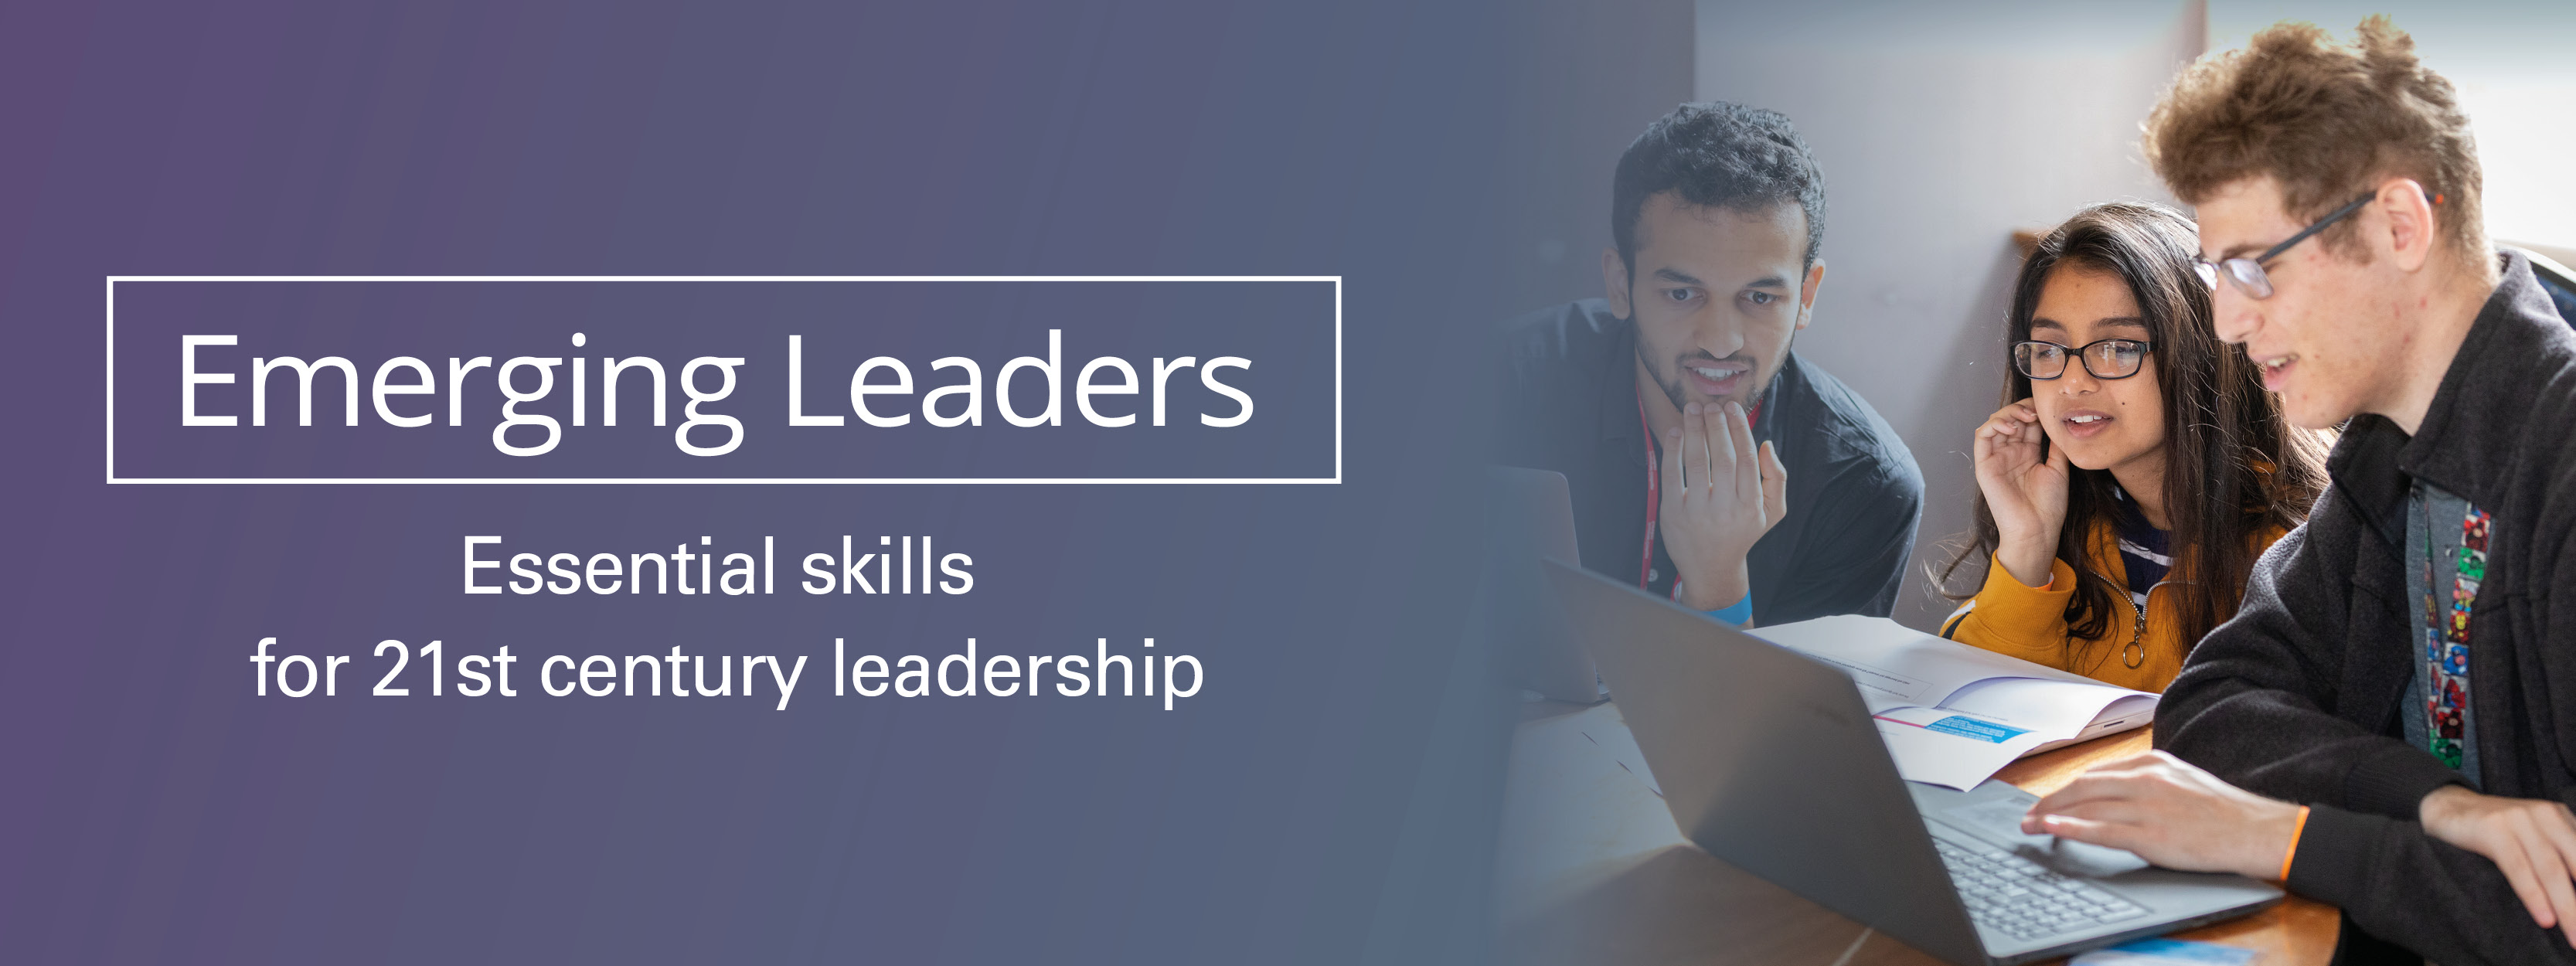 Emerging Leaders. Essential skills for 21st century leadership.